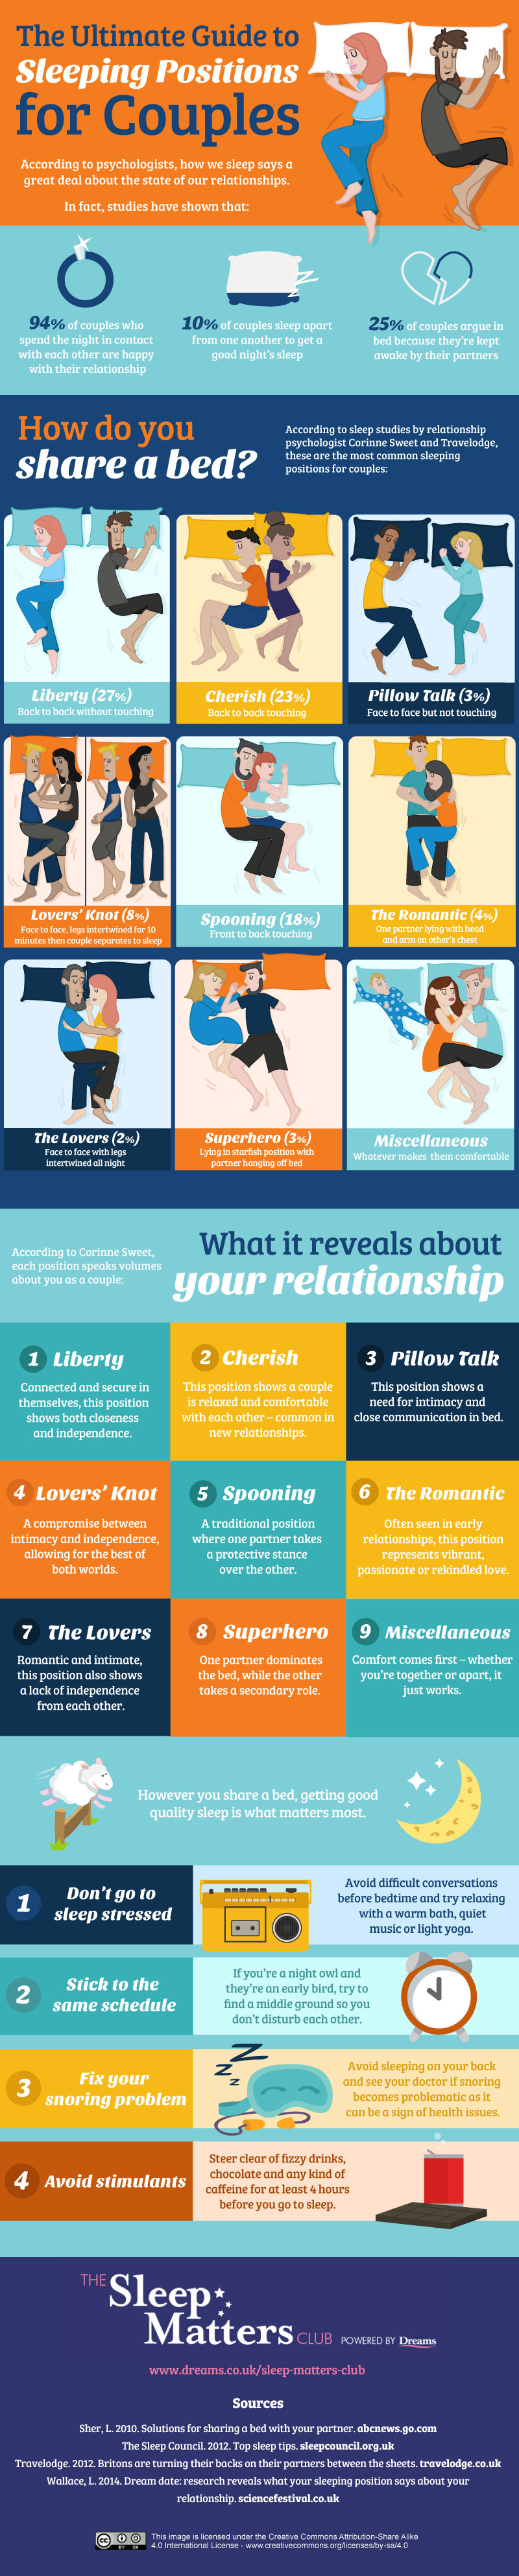 The Ultimate Guide to Sleeping Positions for Couples